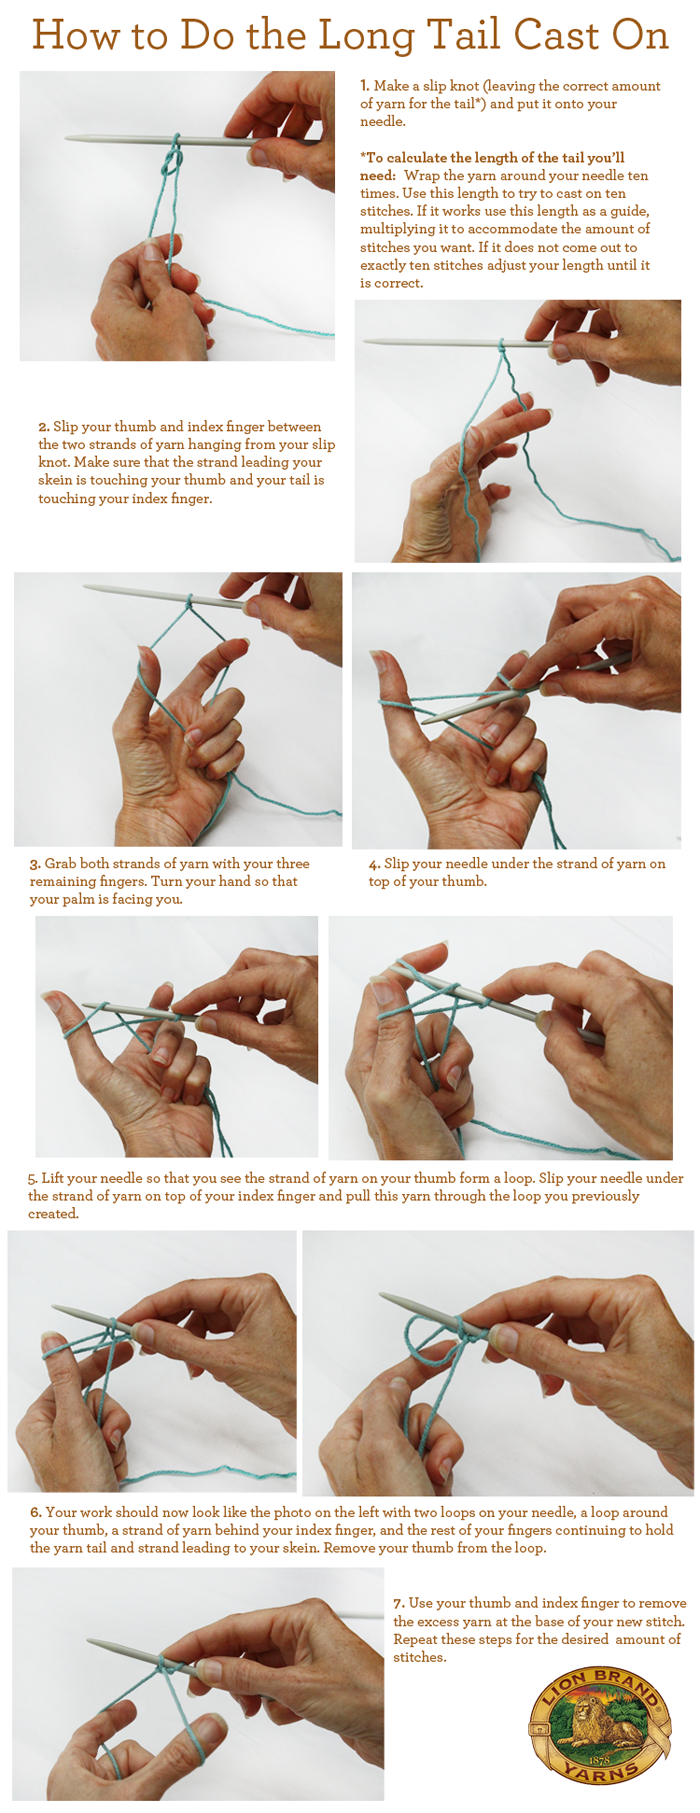 How To Cast On Knitting Stitches Long Tail : How to Do the Long Tail Cast On Crochet, Knit crochet and Yarns